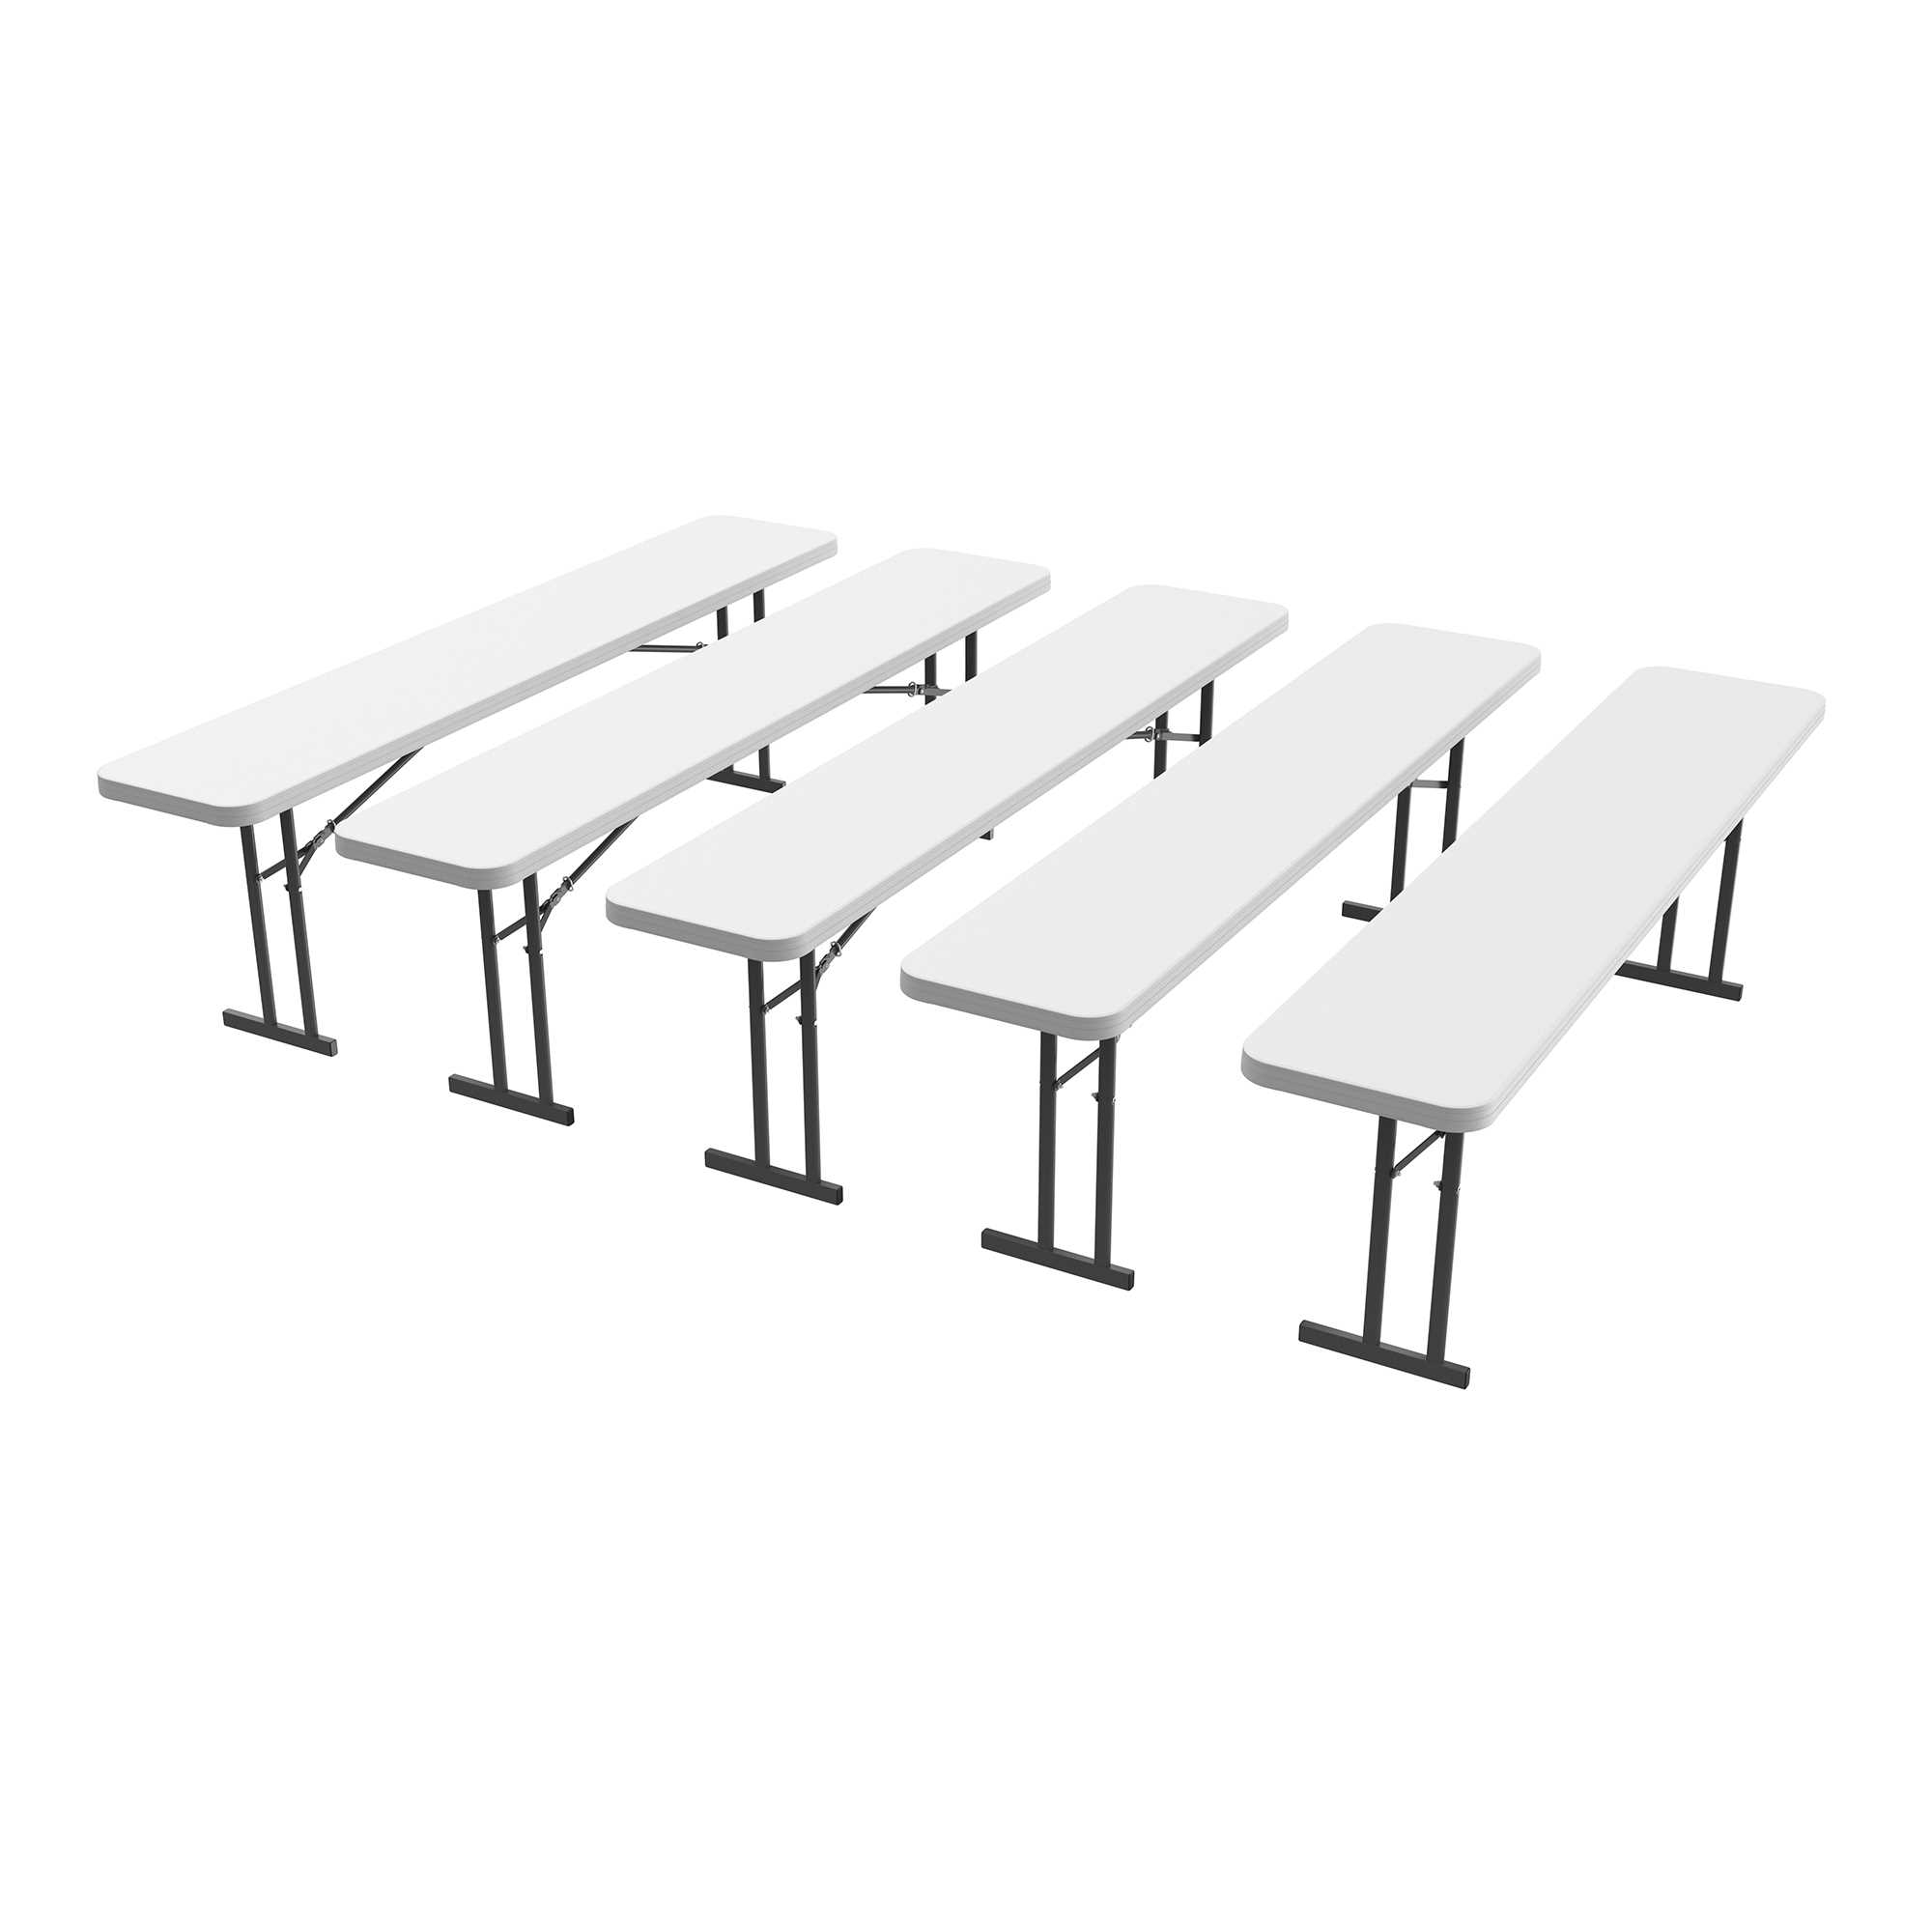 Lifetime 8-Foot Seminar Table - 5 Pk (Commercial)